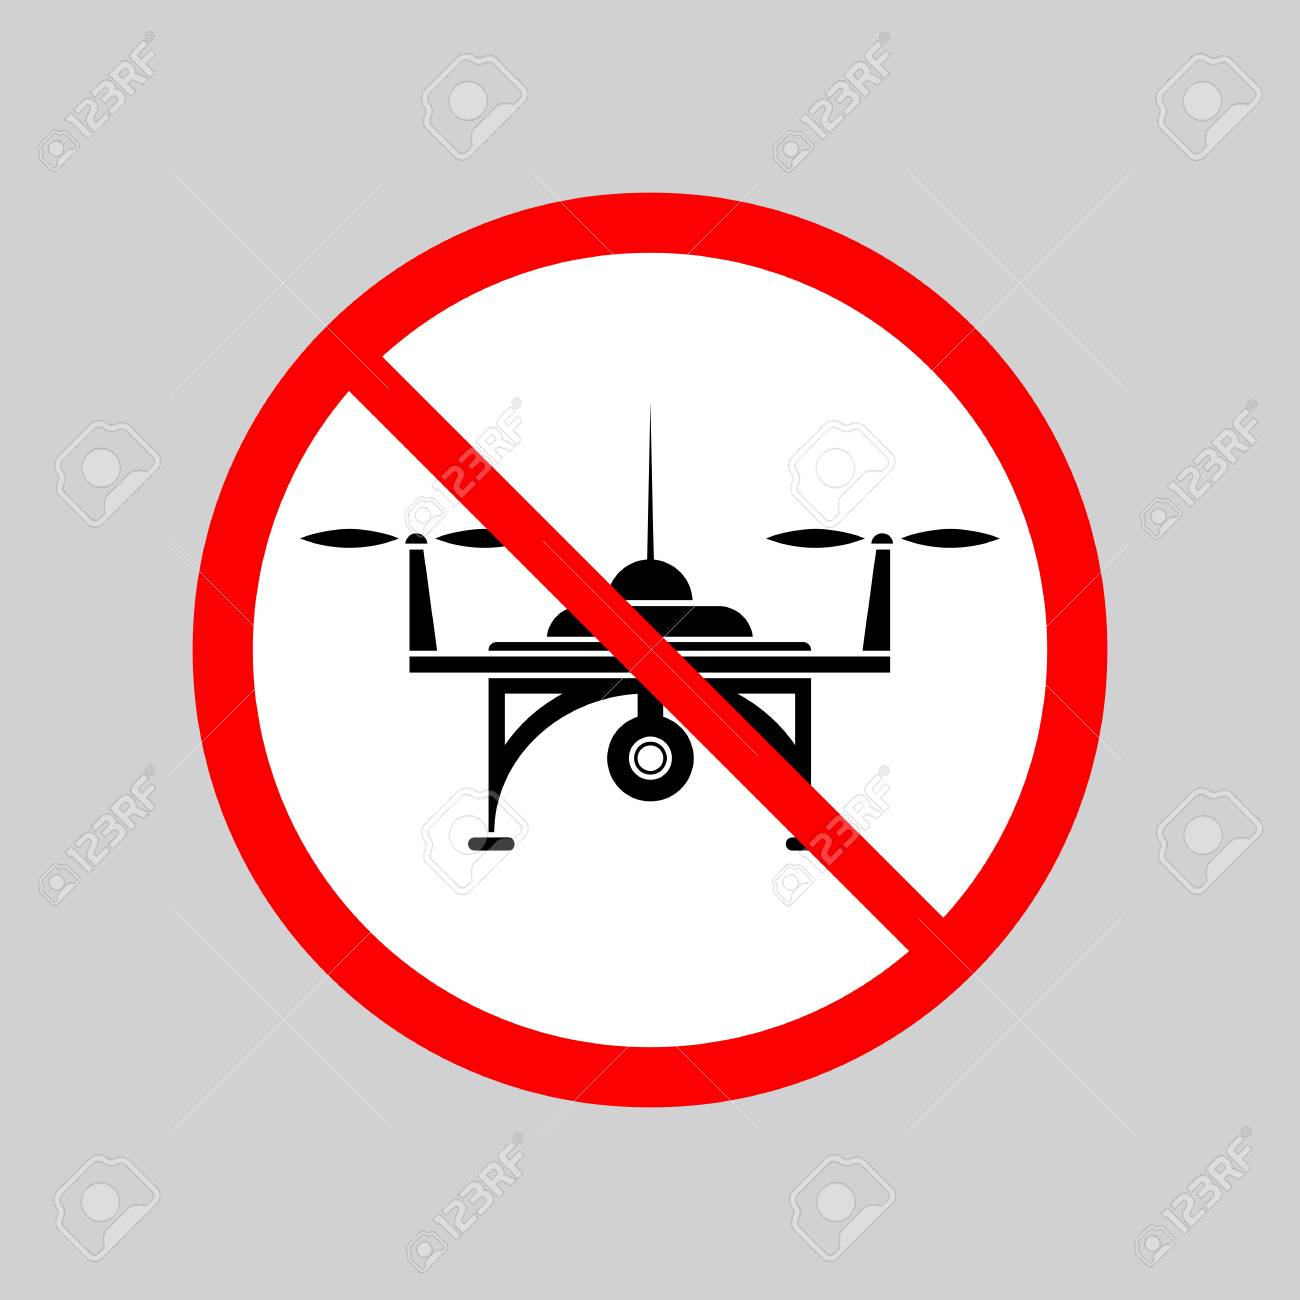 Photo And Video Air Drone Icon Modern Quadrocopter With Digital Camera Silhouette High Technology Innovation Copter Concept Remote Control